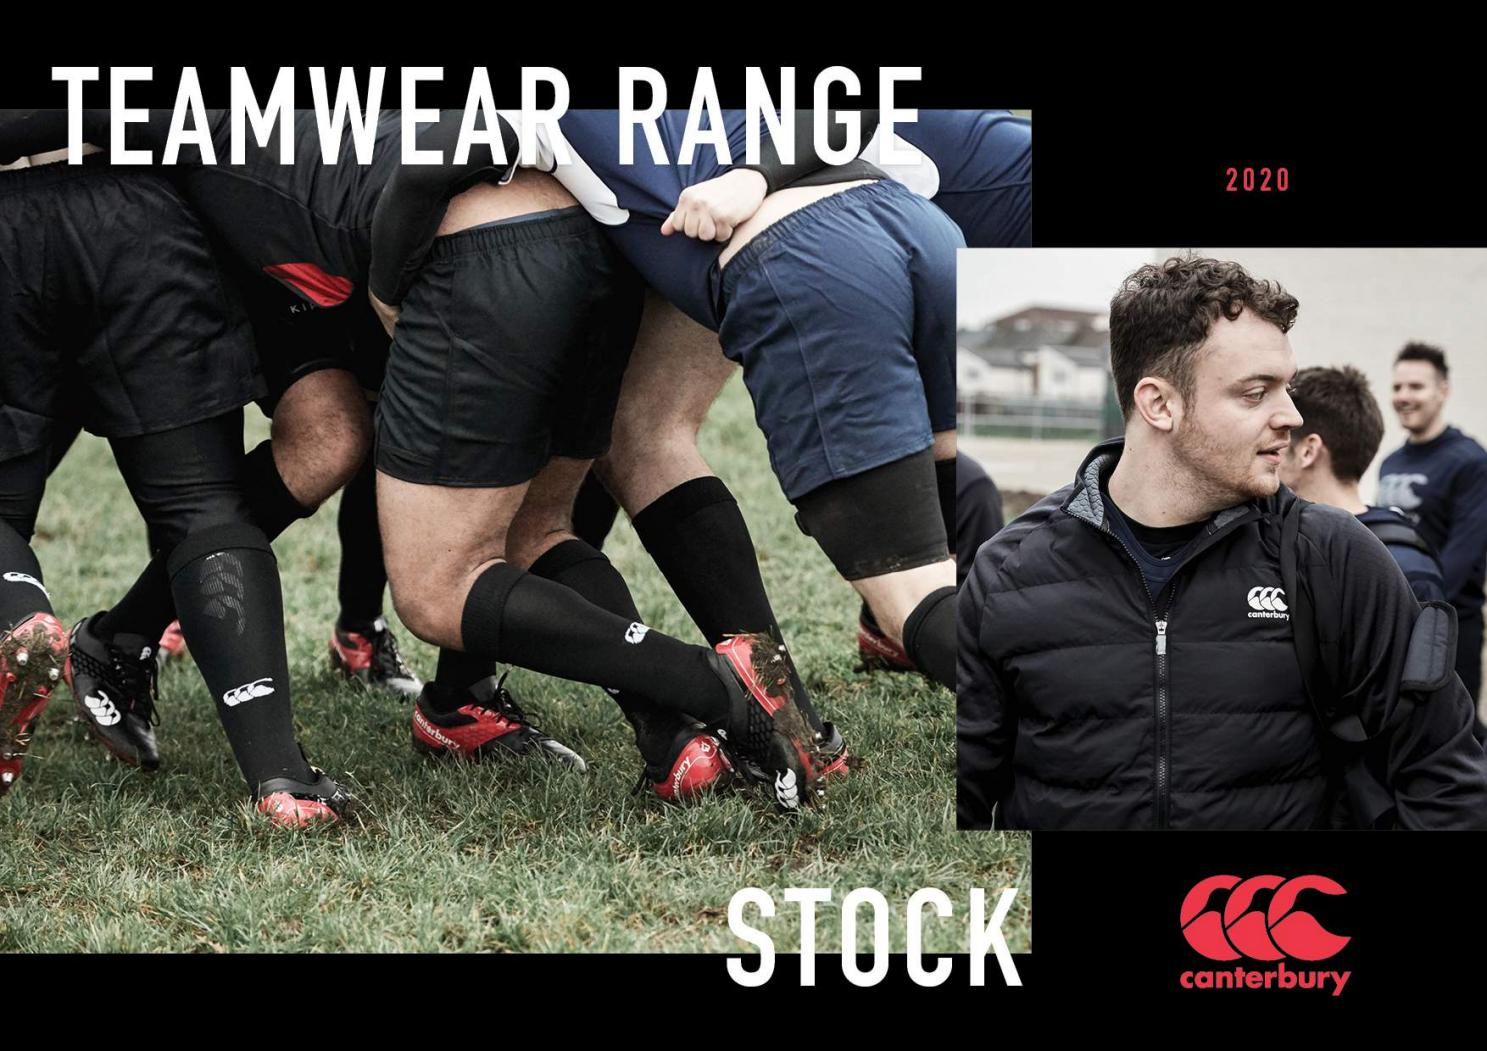 CANTERBURY ACCESSORIES | www.therugbyshop.com